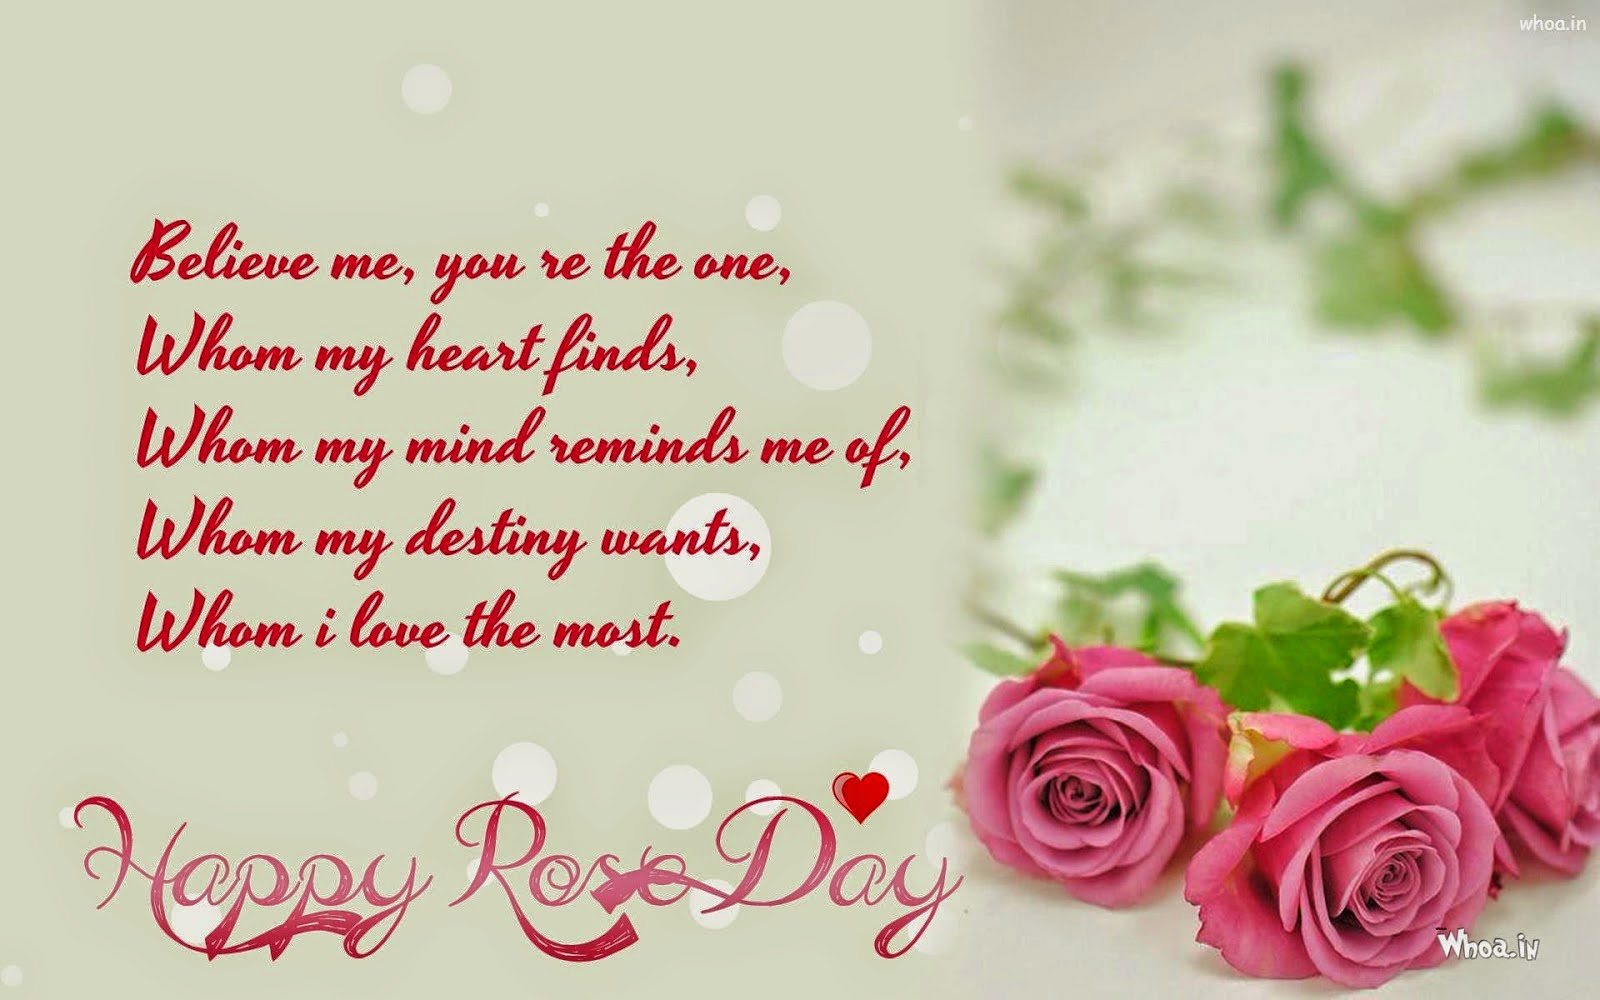 Most beautiful love quotes hd all in one most beautiful love quotes hd kristyandbryce Image collections